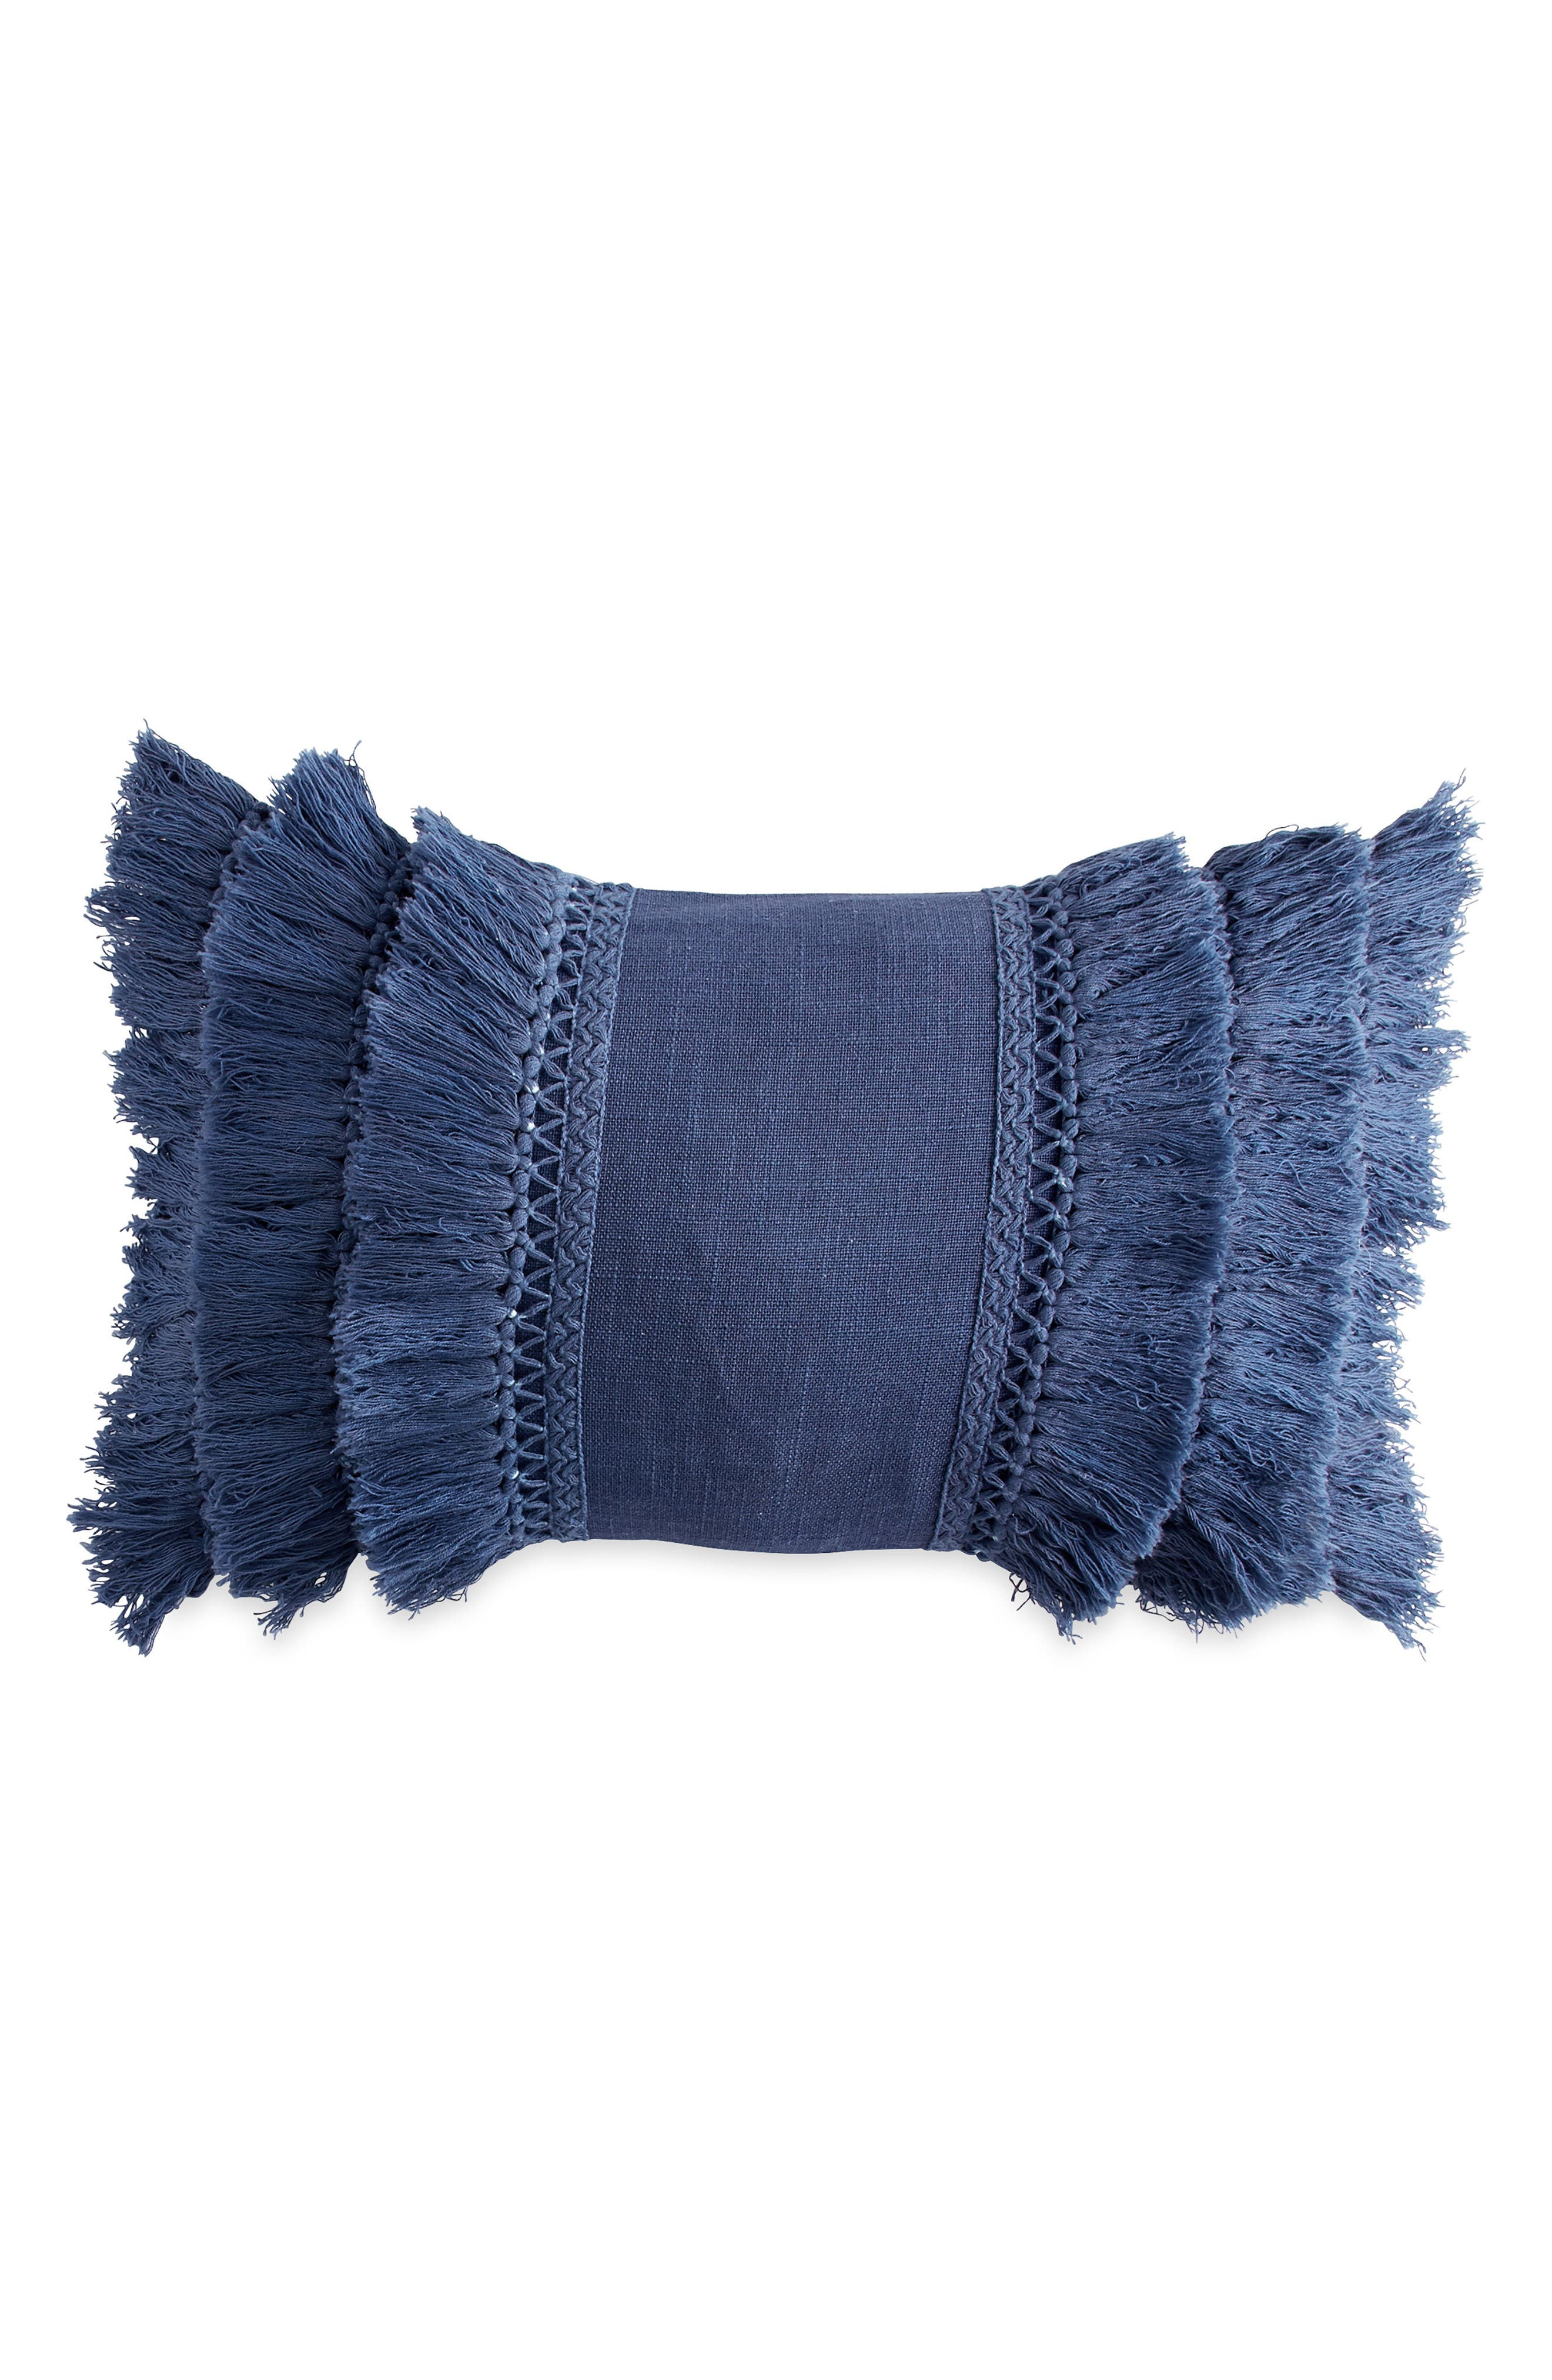 Tiered fringe makes this plush accent pillow a vintage-chic addition to your bedroom decor. Style Name: Peri Home Fringe Pillow. Style Number: 5367401 1. Available in stores.